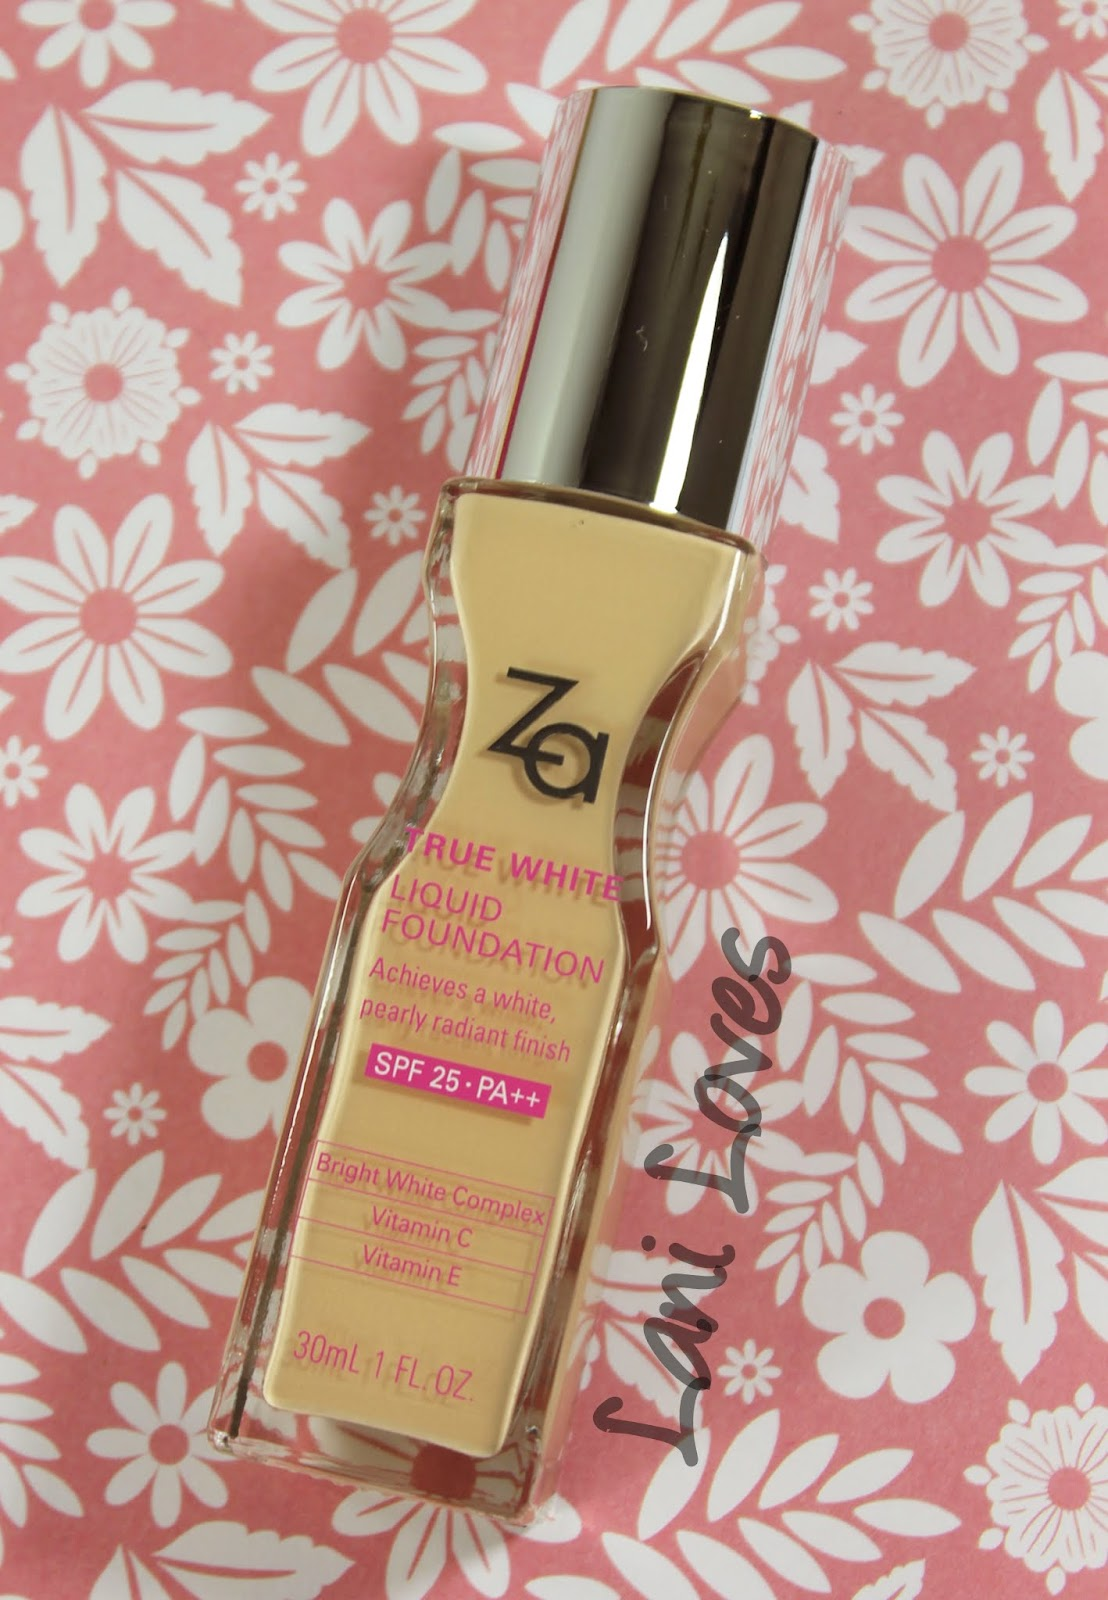 ZA Foundation April Gift With Purchase